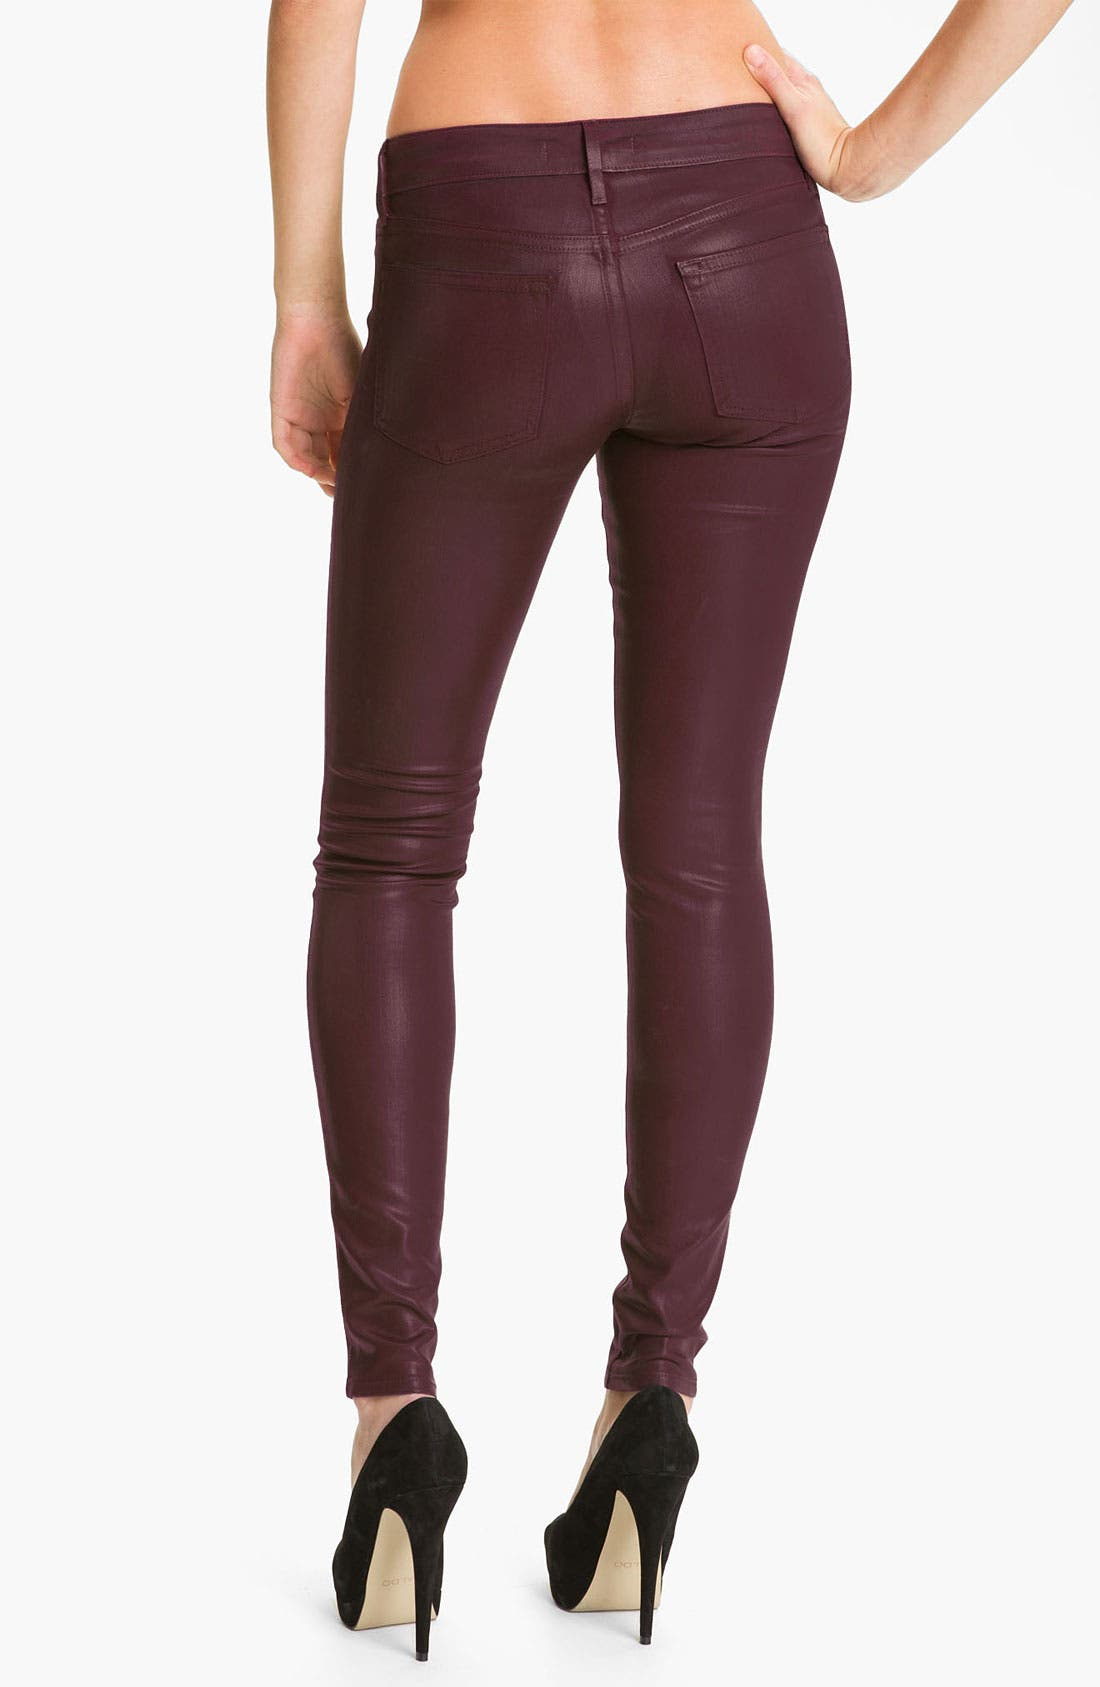 Alternate Image 2  - Rich & Skinny 'Legacy Leather' Faux Leather Skinny Jeans (Oxblood)